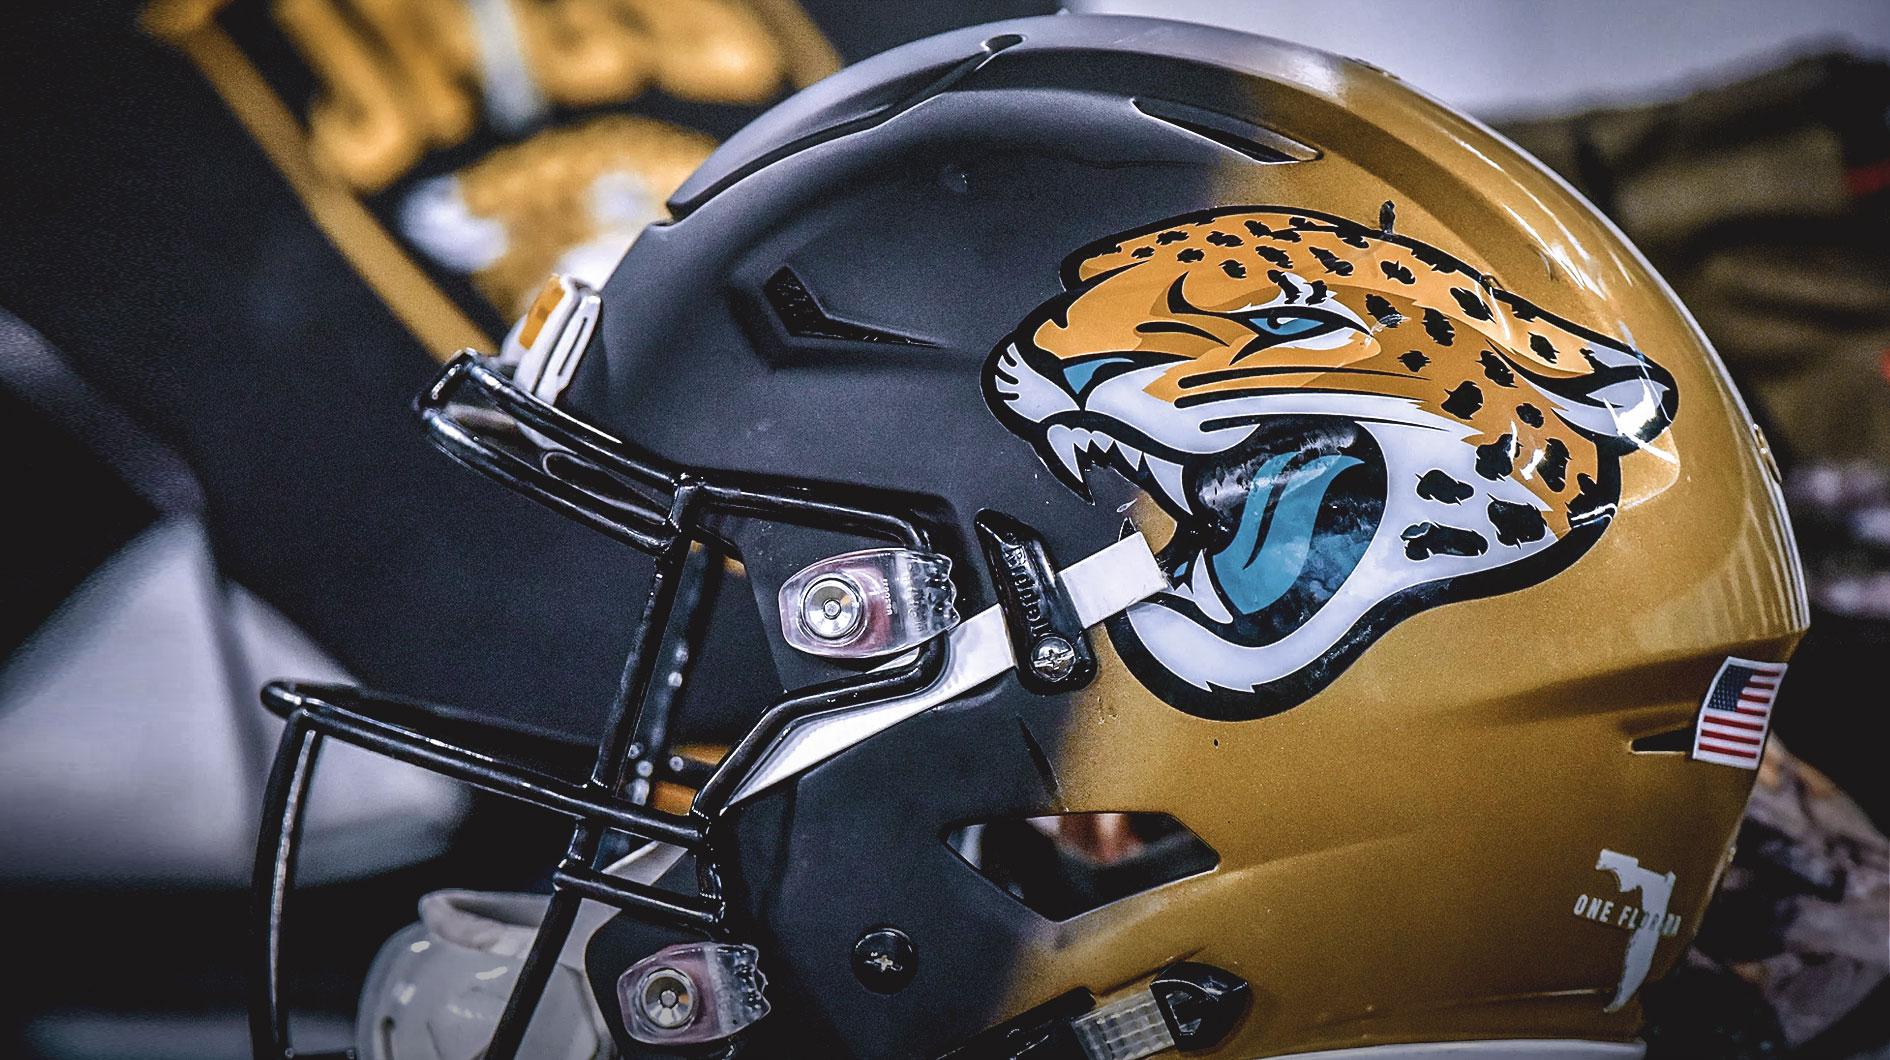 Is It Safe To Consider the Jacksonville Jaguars A Lock For Least Wins This Season?